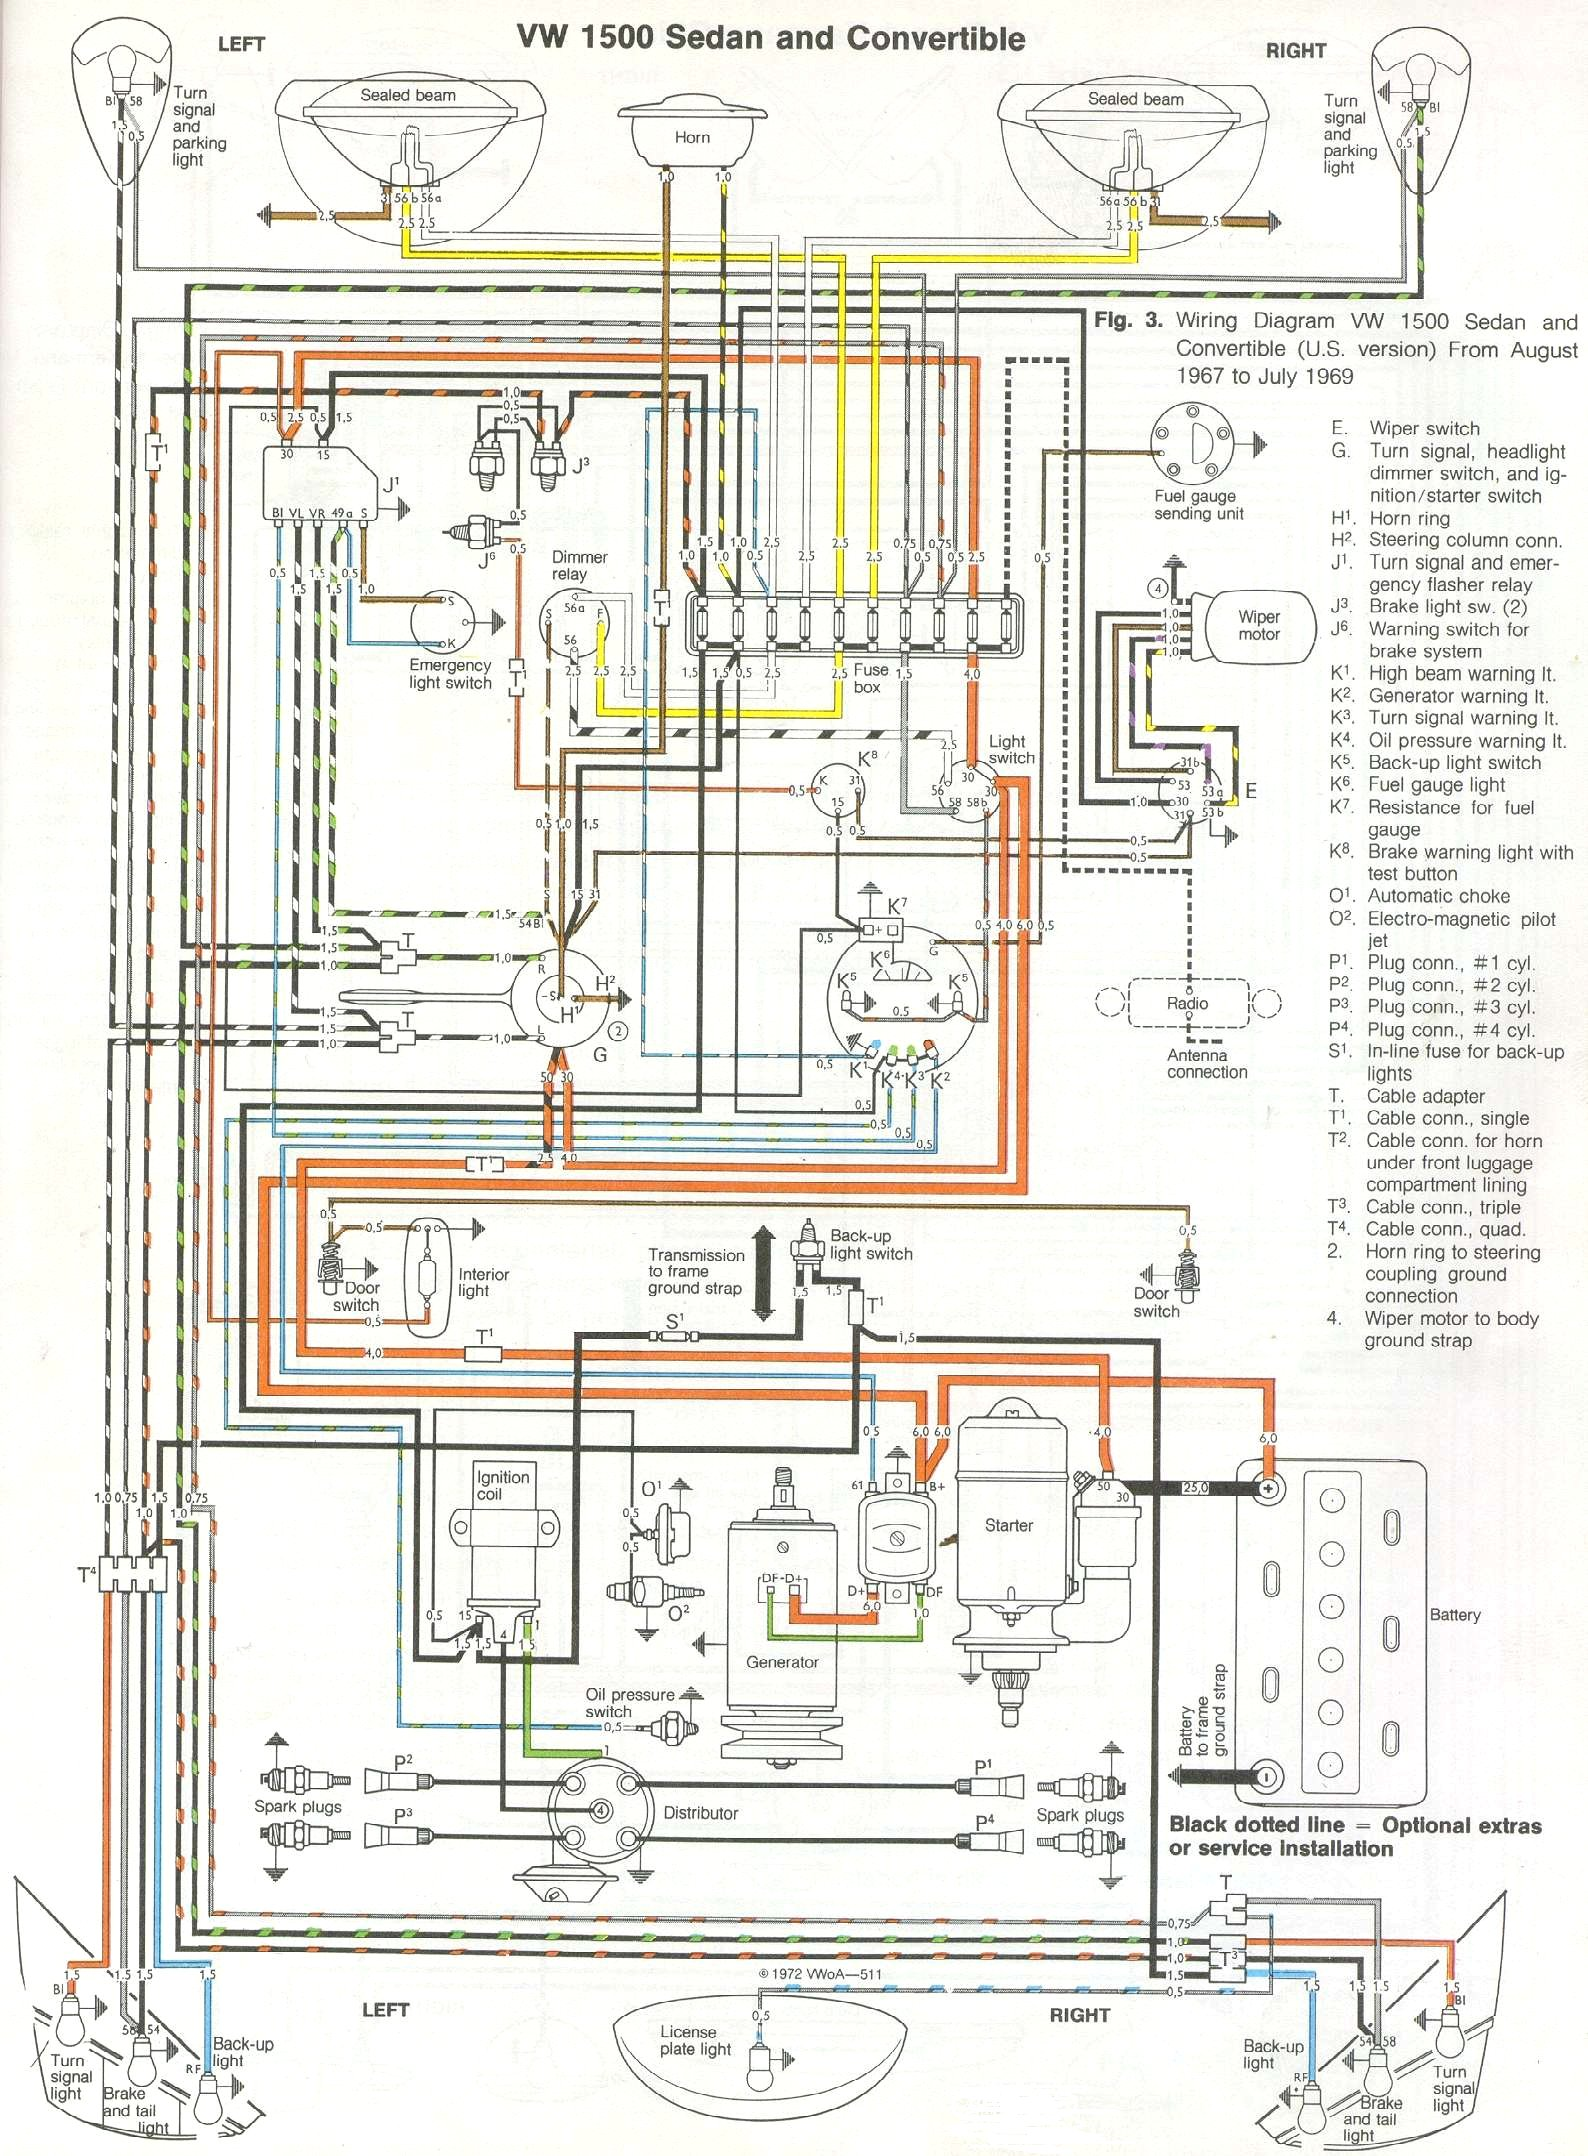 1970 vw beetle engine wiring diagram wiring diagrams and schematics vw wiring diagrams